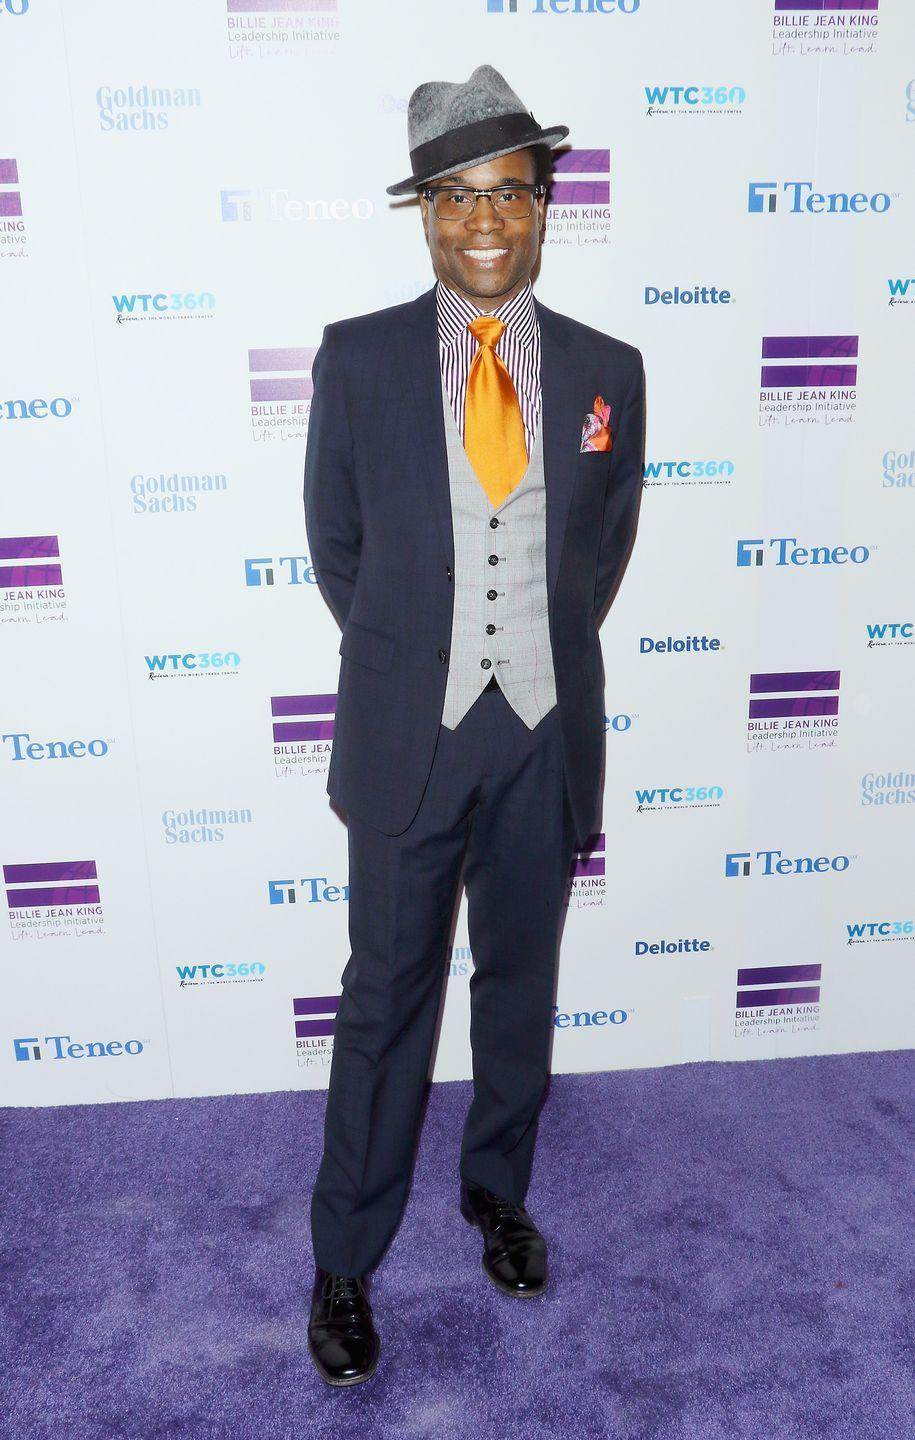 <p>Porter at the Billie Jean King Leadership Initiative gala in a three-piece suit with a gray wool hat and orange silk tie. </p>